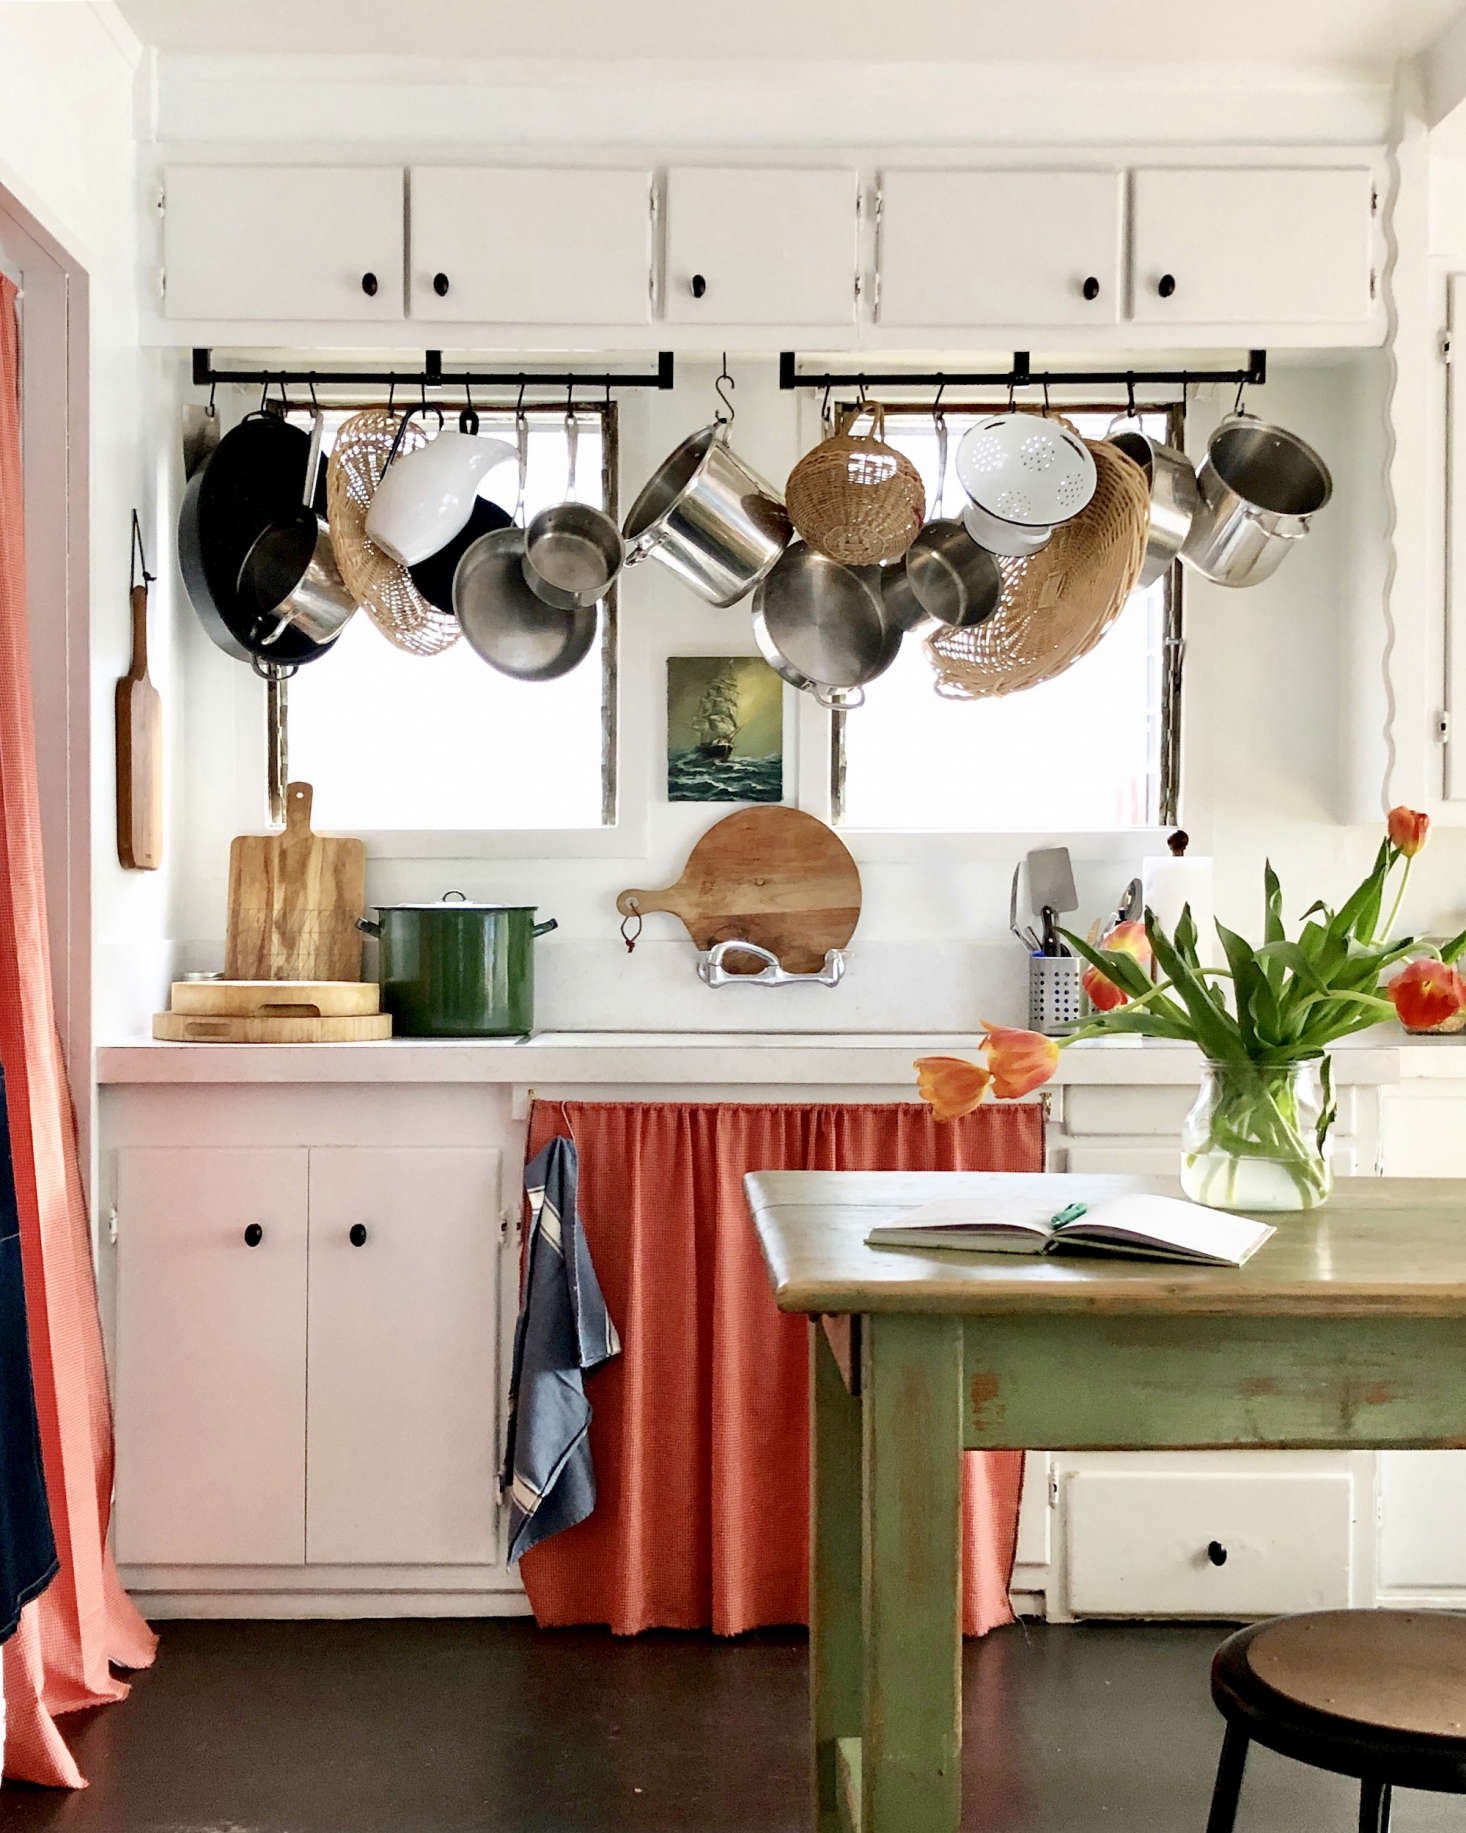 What happens when an Irish lass makes a home in Southern California? See the bright and charm-filled results in My Life in Colour: 8 Lessons from Gillian Lawlee's Anti-Trendy LA Cottage. Photograph by Gillian Lawlee.